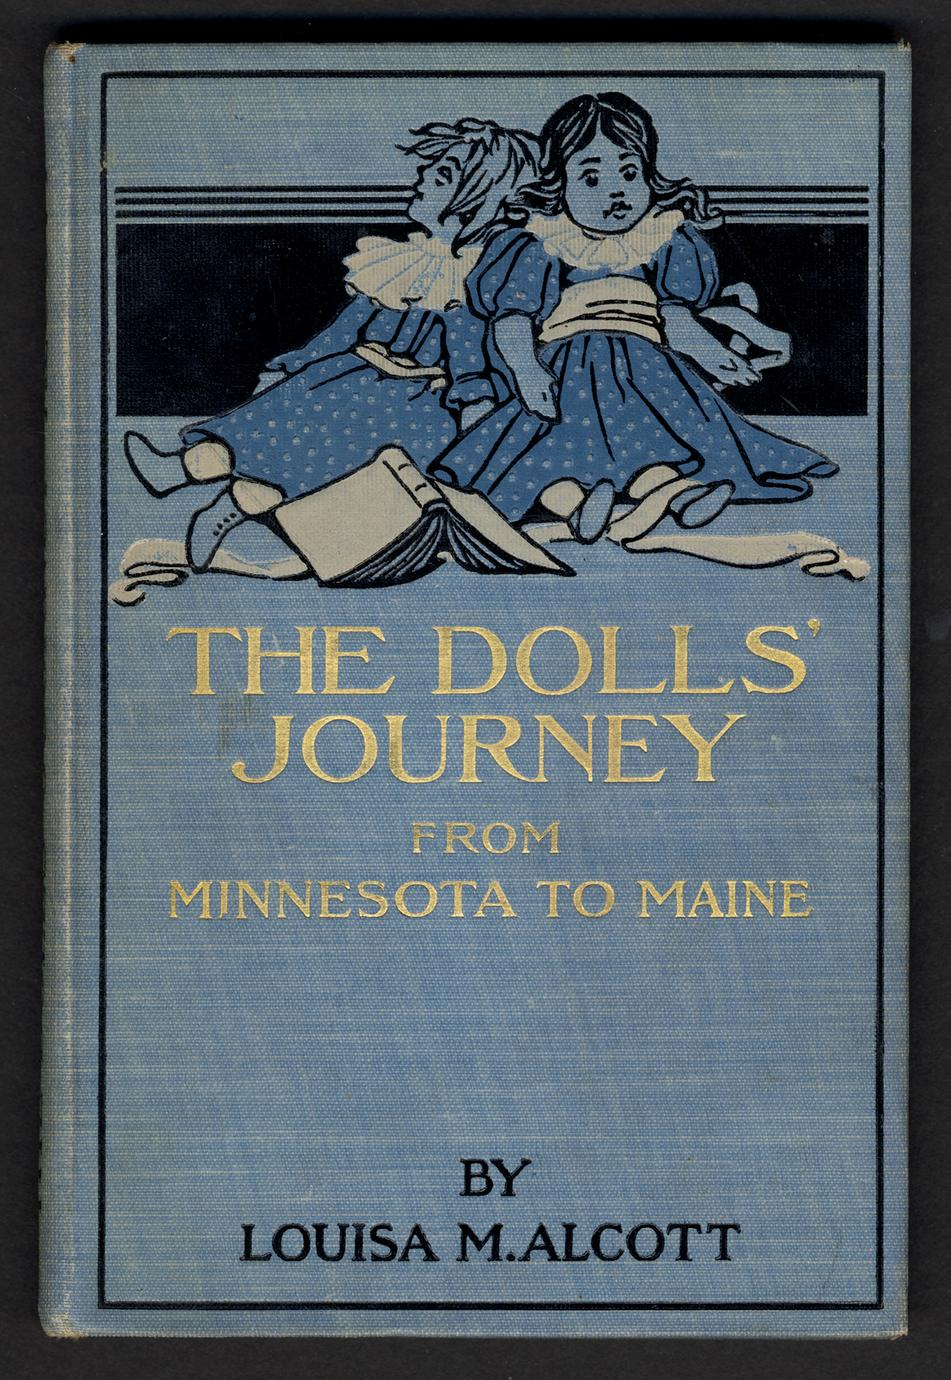 The dolls' journey (1 of 2)